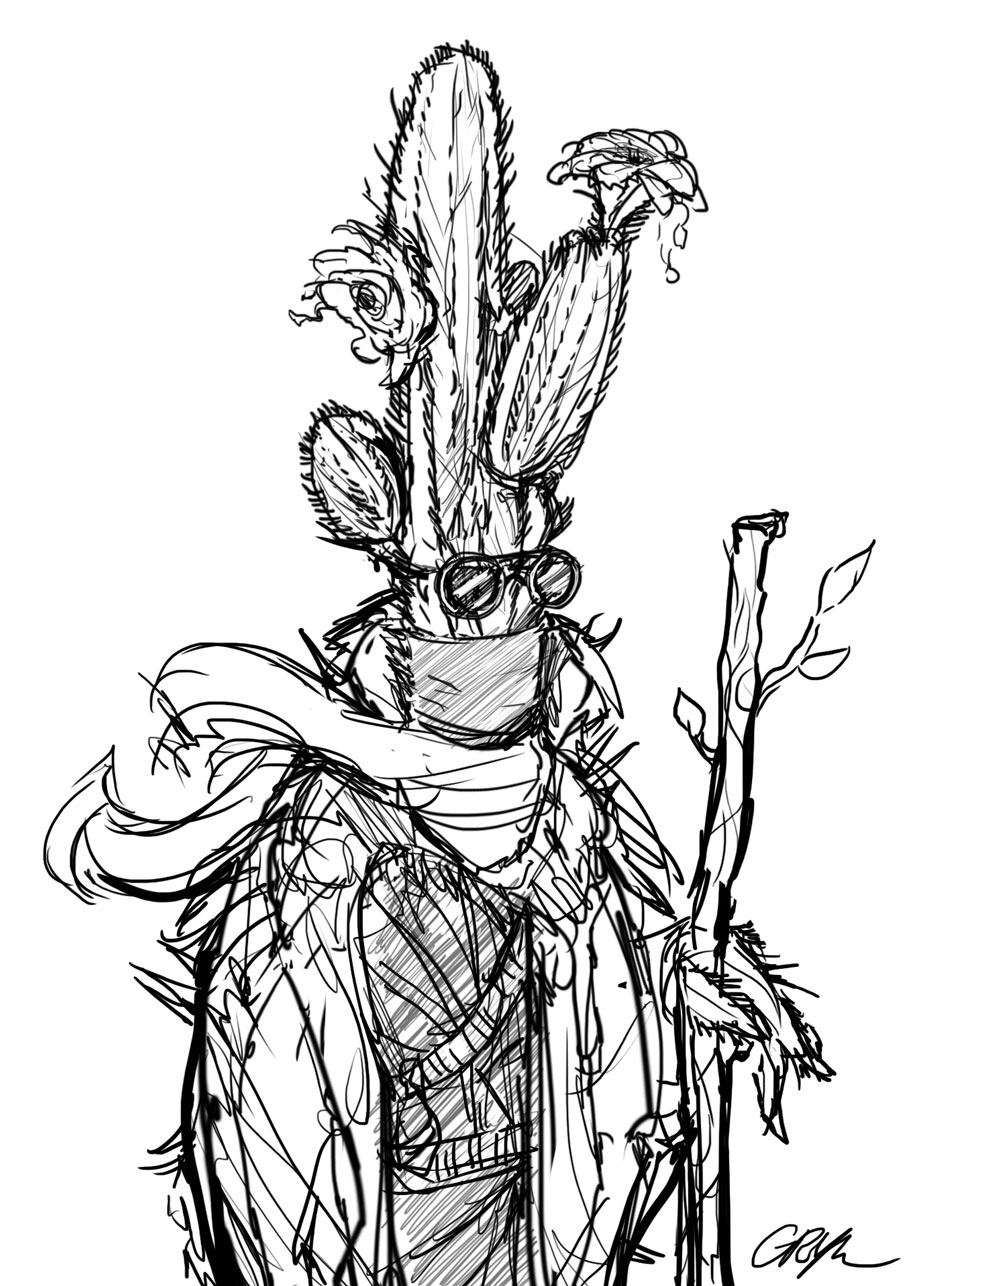 Spini is pictured in full desert-goer garb along with protective goggles and a hiking stick. A couple of flowers bloom from their 'head'.